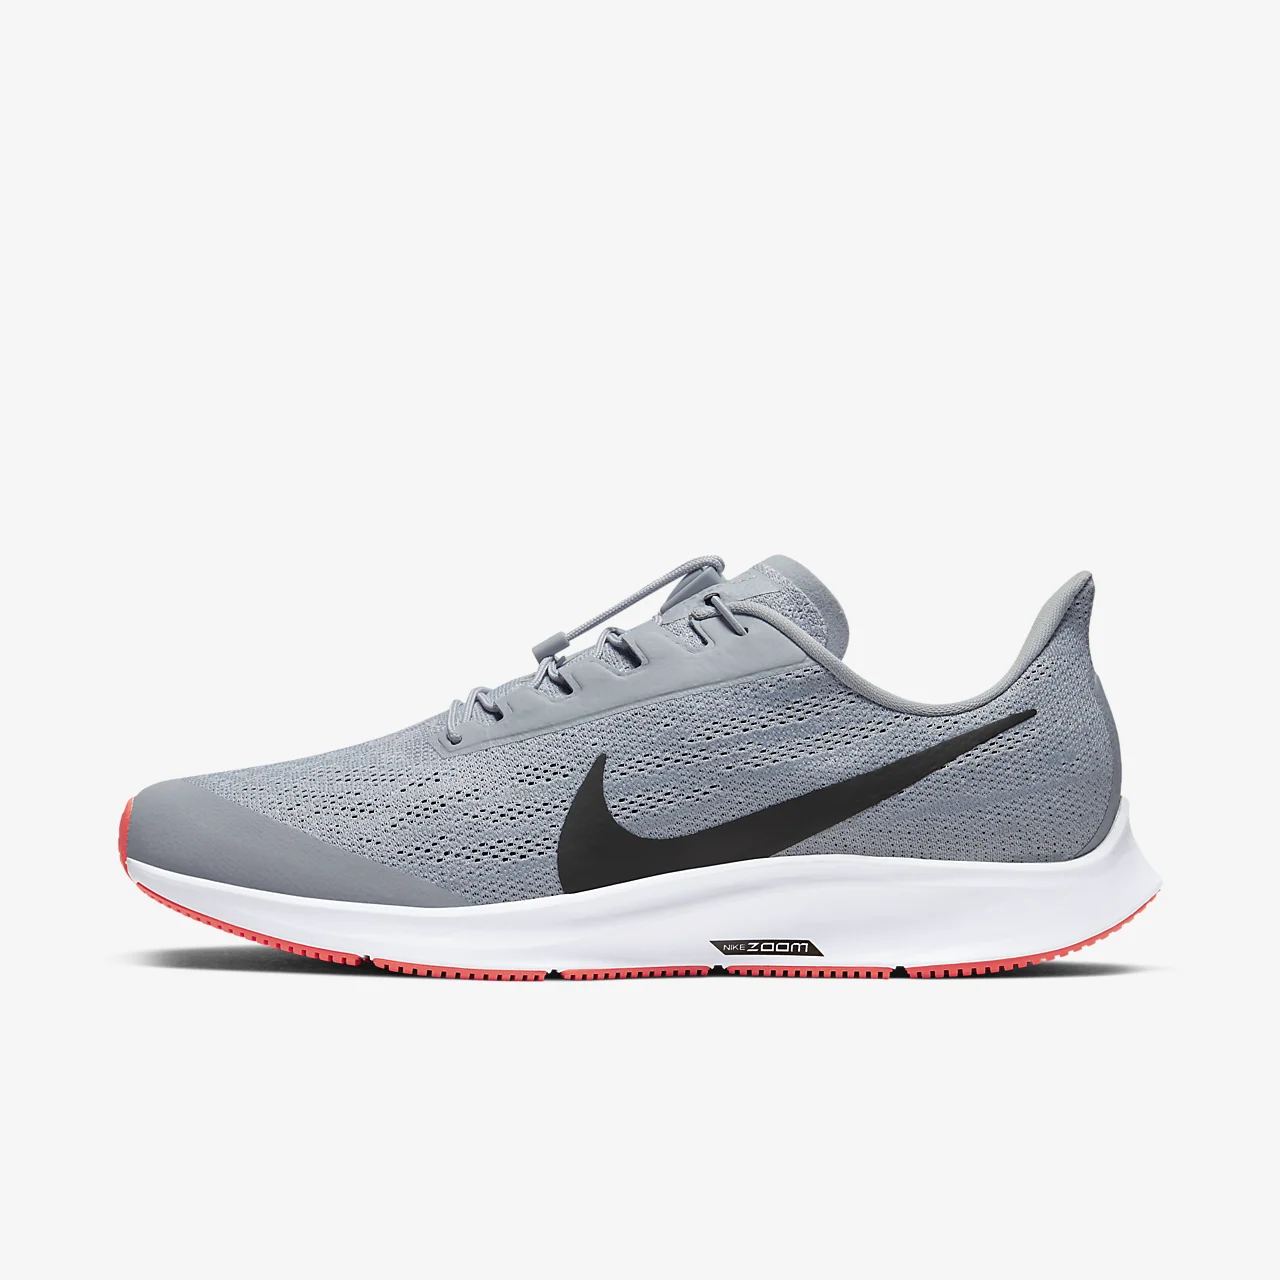 유럽직배송 나이키 NIKE Nike Air Zoom Pegasus 36 FlyEase Men's Running Shoe BV0613-003